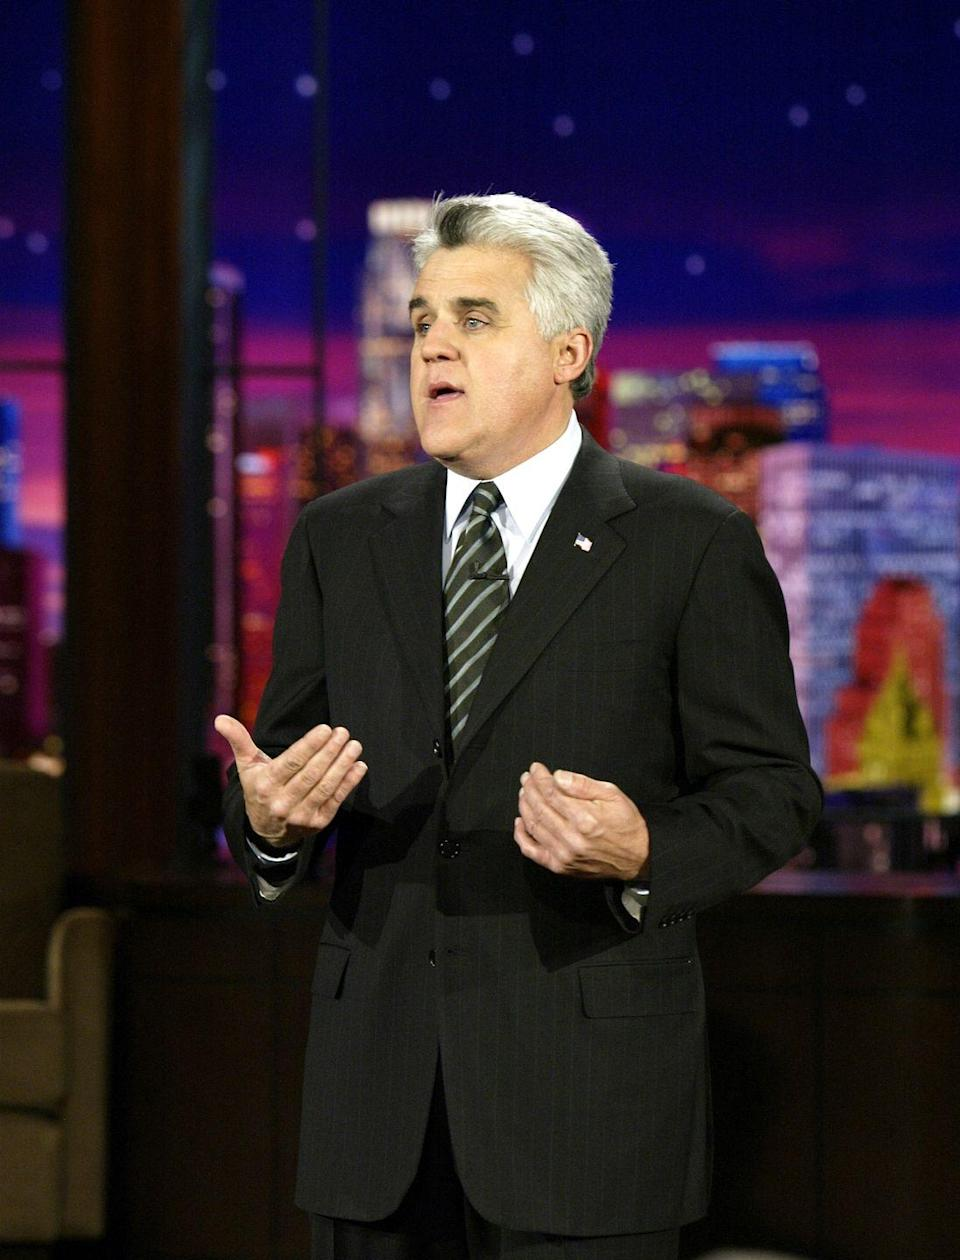 "<p>The late-night host started his career with a job at a McDonald's in Massachusetts. He <a href=""http://goldenopportunitybook.com/jay-leno/"" rel=""nofollow noopener"" target=""_blank"" data-ylk=""slk:told Cody Teets"" class=""link rapid-noclick-resp"">told Cody Teets</a>, author of <a href=""https://www.amazon.com/Golden-Opportunity-Remarkable-Careers-McDonalds/dp/1604332794?tag=syn-yahoo-20&ascsubtag=%5Bartid%7C2140.g.27361202%5Bsrc%7Cyahoo-us"" rel=""nofollow noopener"" target=""_blank"" data-ylk=""slk:Golden Opportunity: Remarkable Careers That Began at McDonald's"" class=""link rapid-noclick-resp""><em>Golden Opportunity: Remarkable Careers That Began at McDonald's</em></a>, that working at the restaurant taught him important life lessons about hard work and having high standards.</p>"